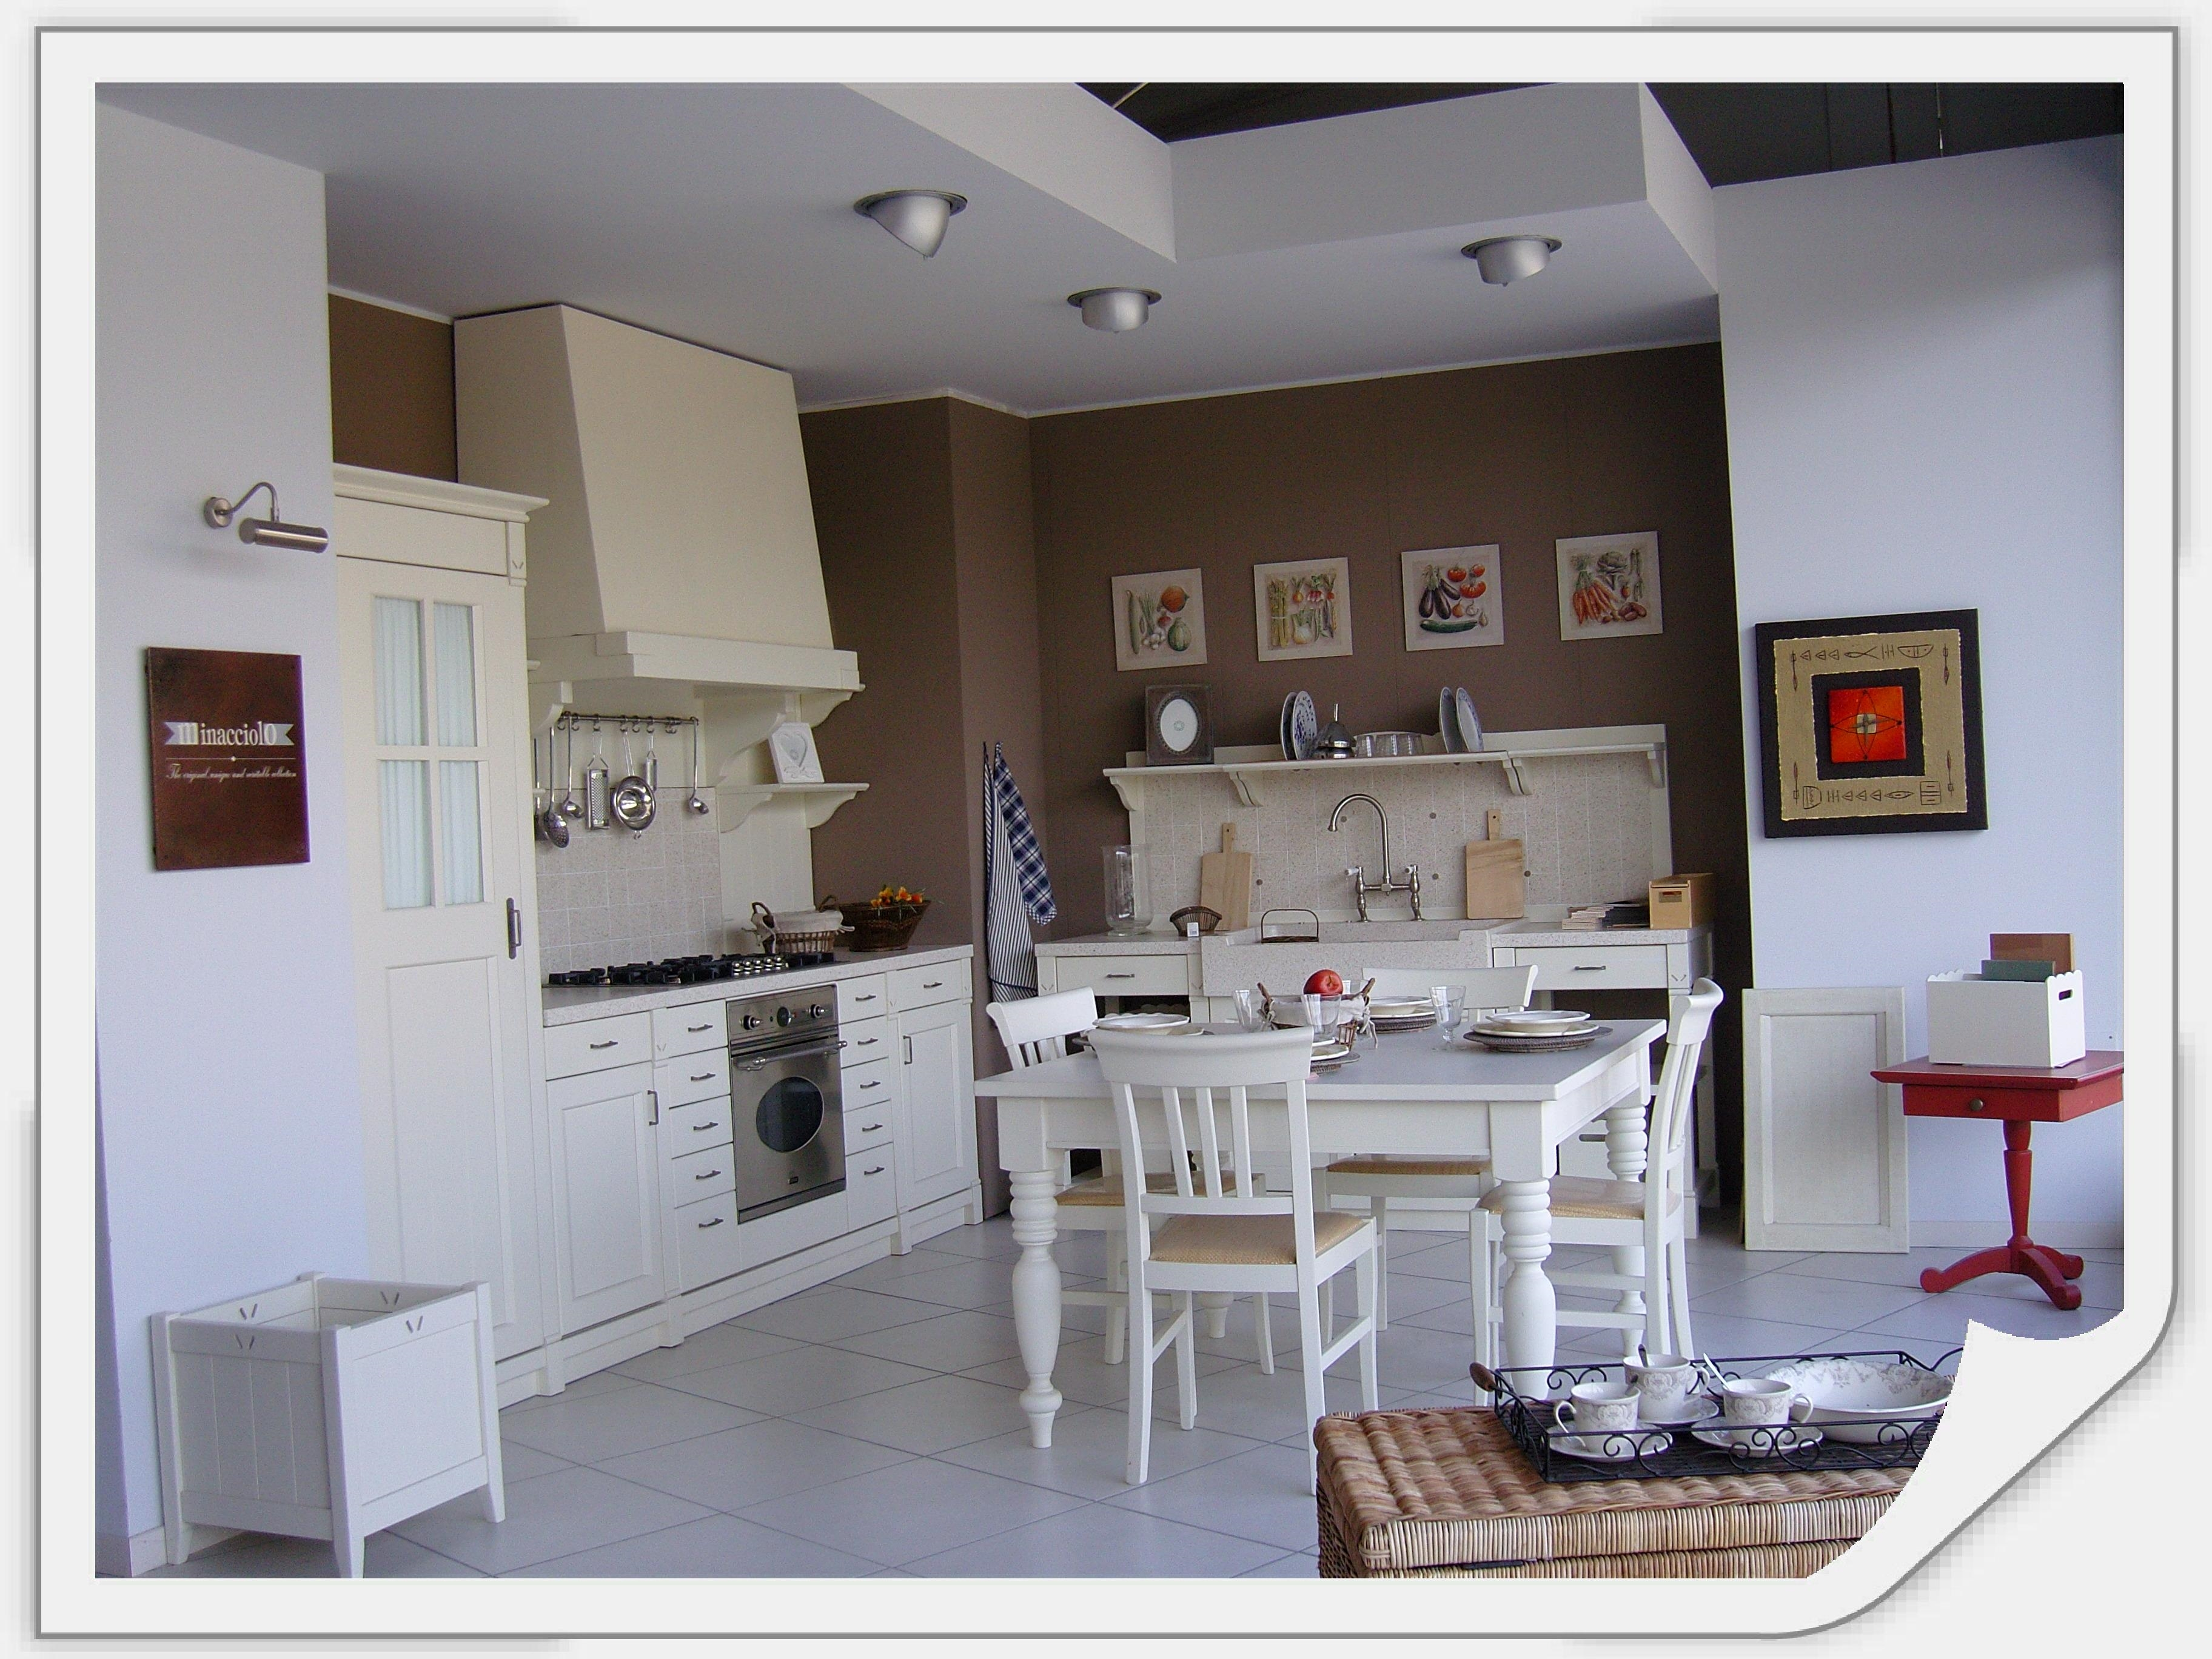 Awesome cucina old england gallery home interior ideas - Cucine english style ...